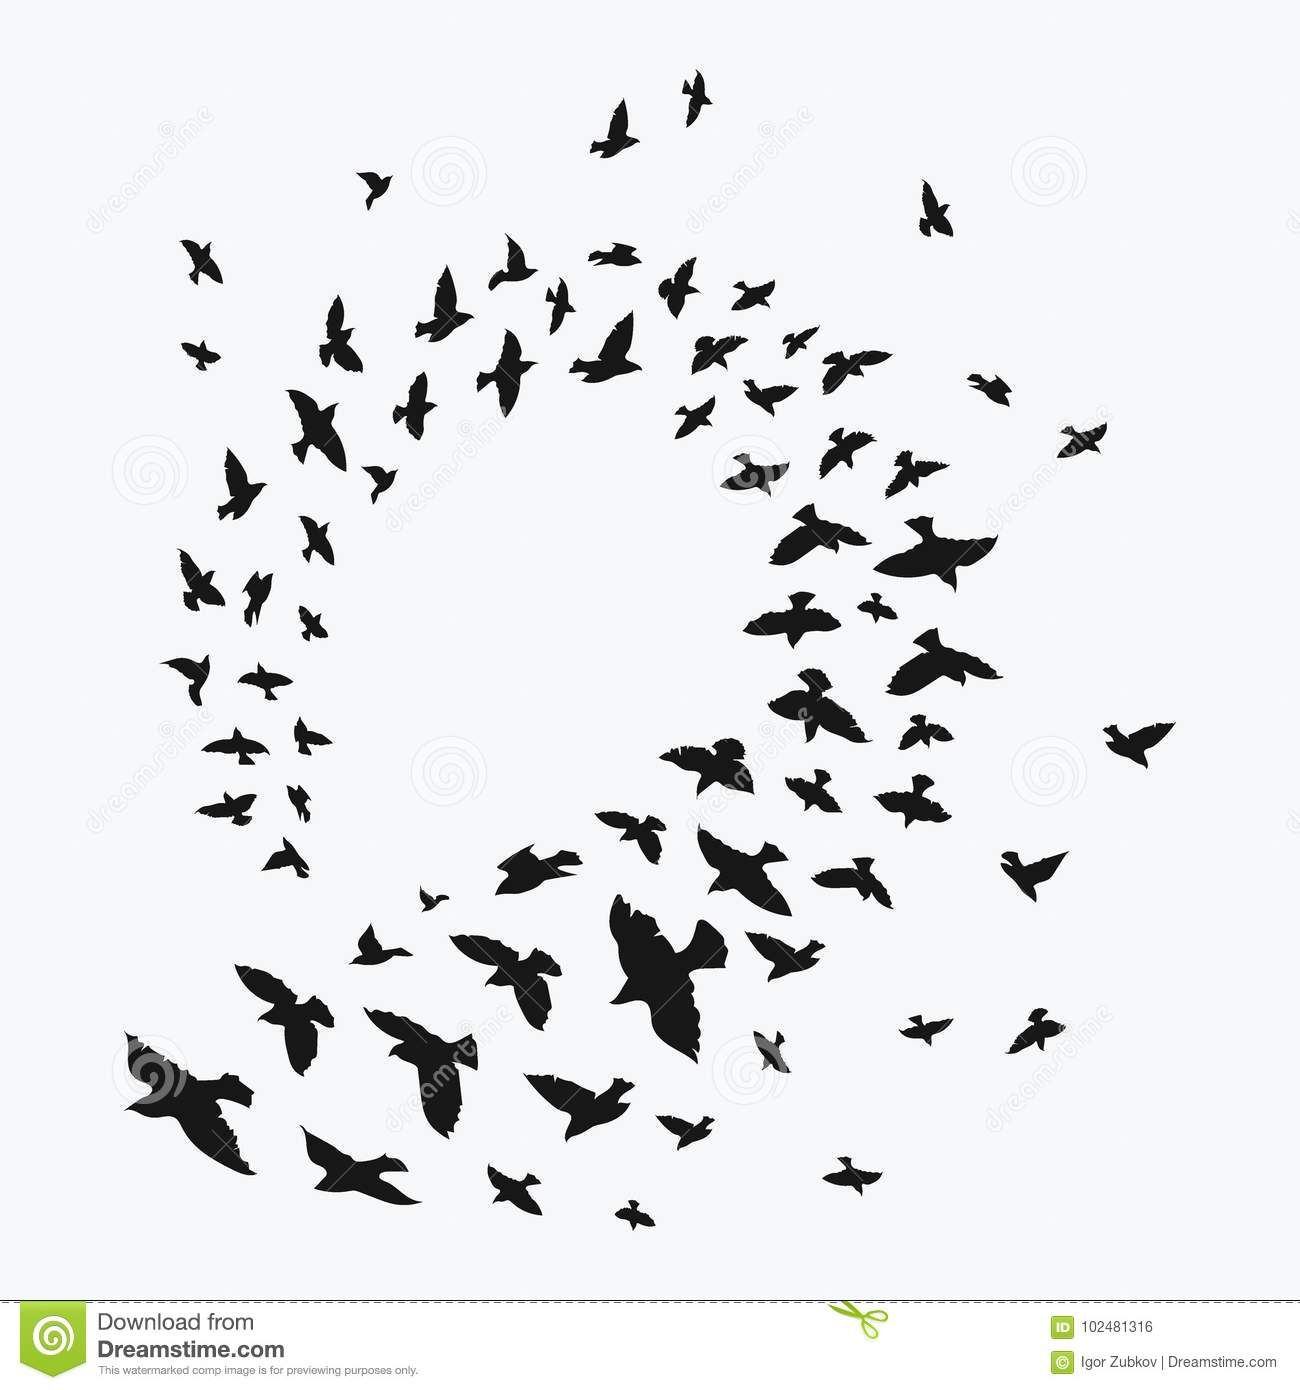 Silhouette Of A Flock Of Birds Black Contours Of Flying Birds Flying Pigeons Tattoo Stock Vector Illustrat Birds Flying Flock Of Birds Flying Bird Tattoo